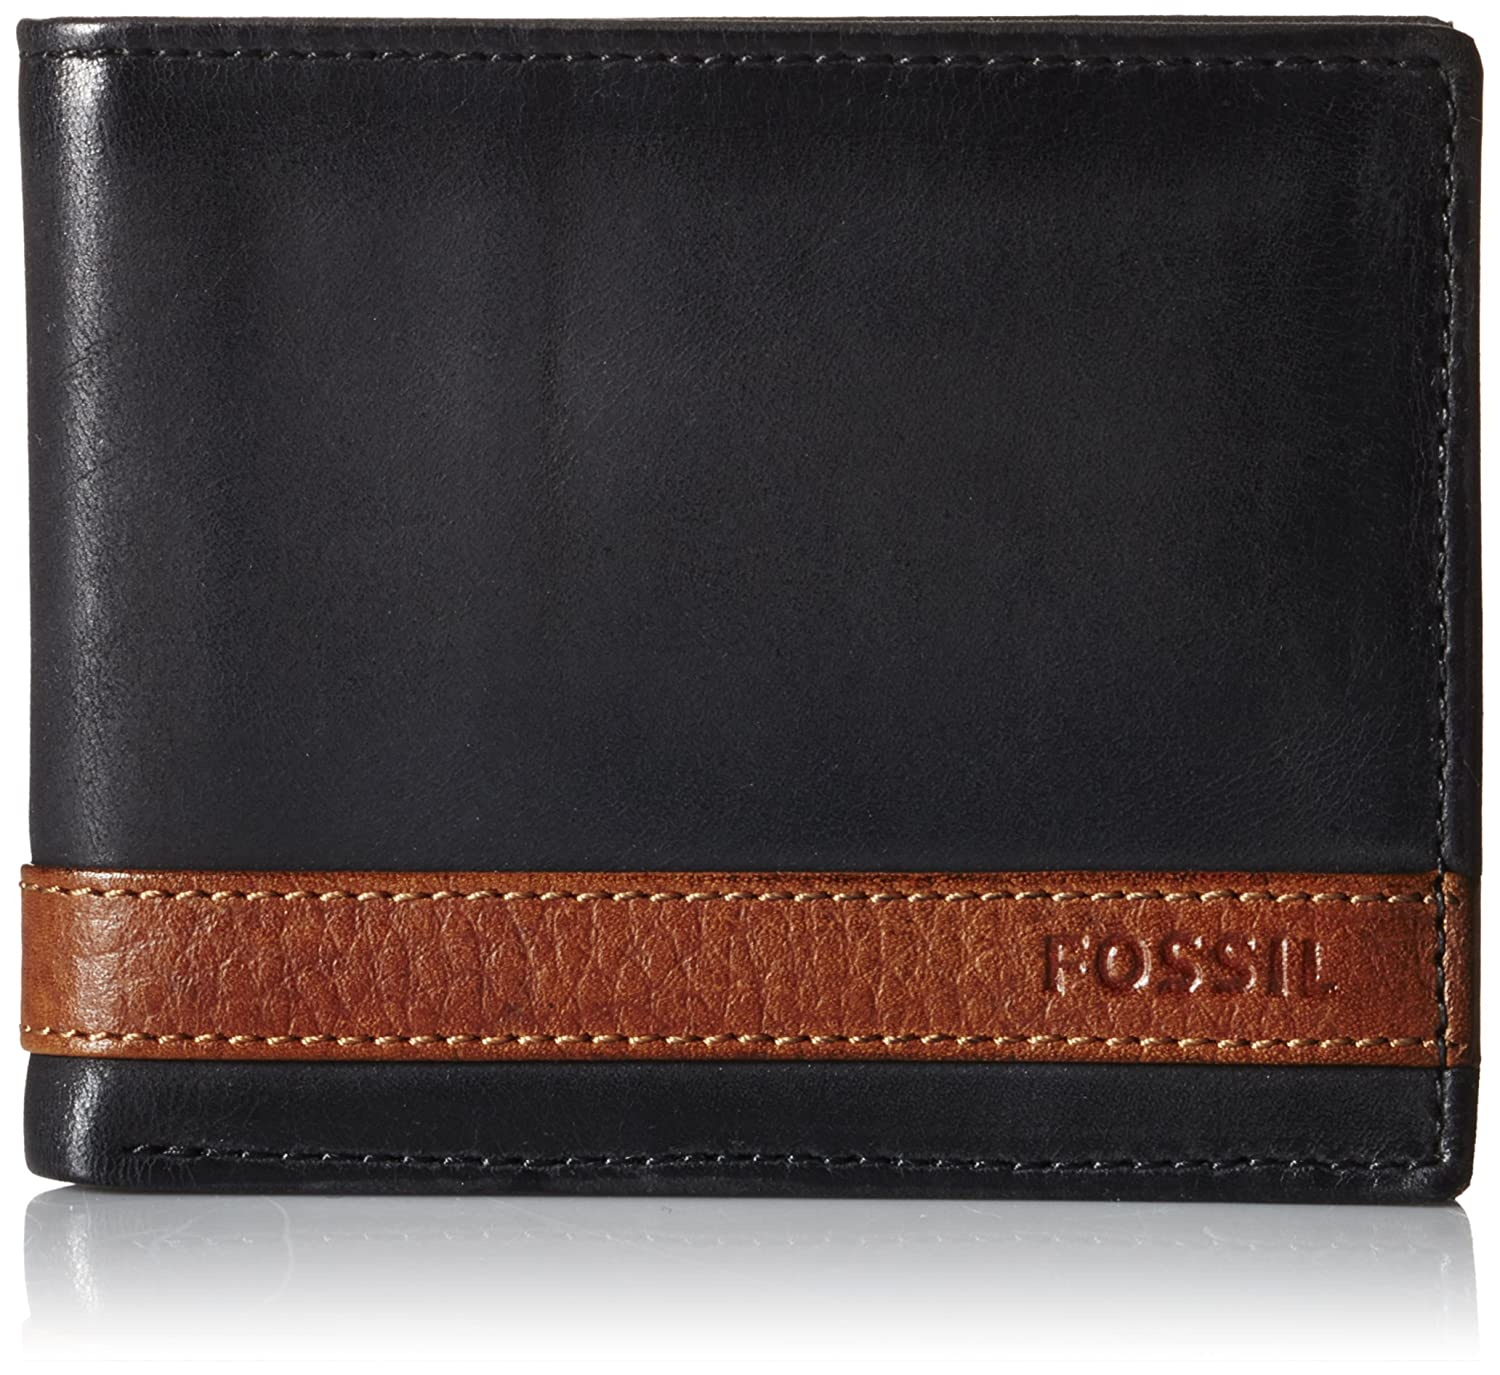 735e60c819a8 Fossil Men's Quinn Leather Bifold Flip ID Wallet